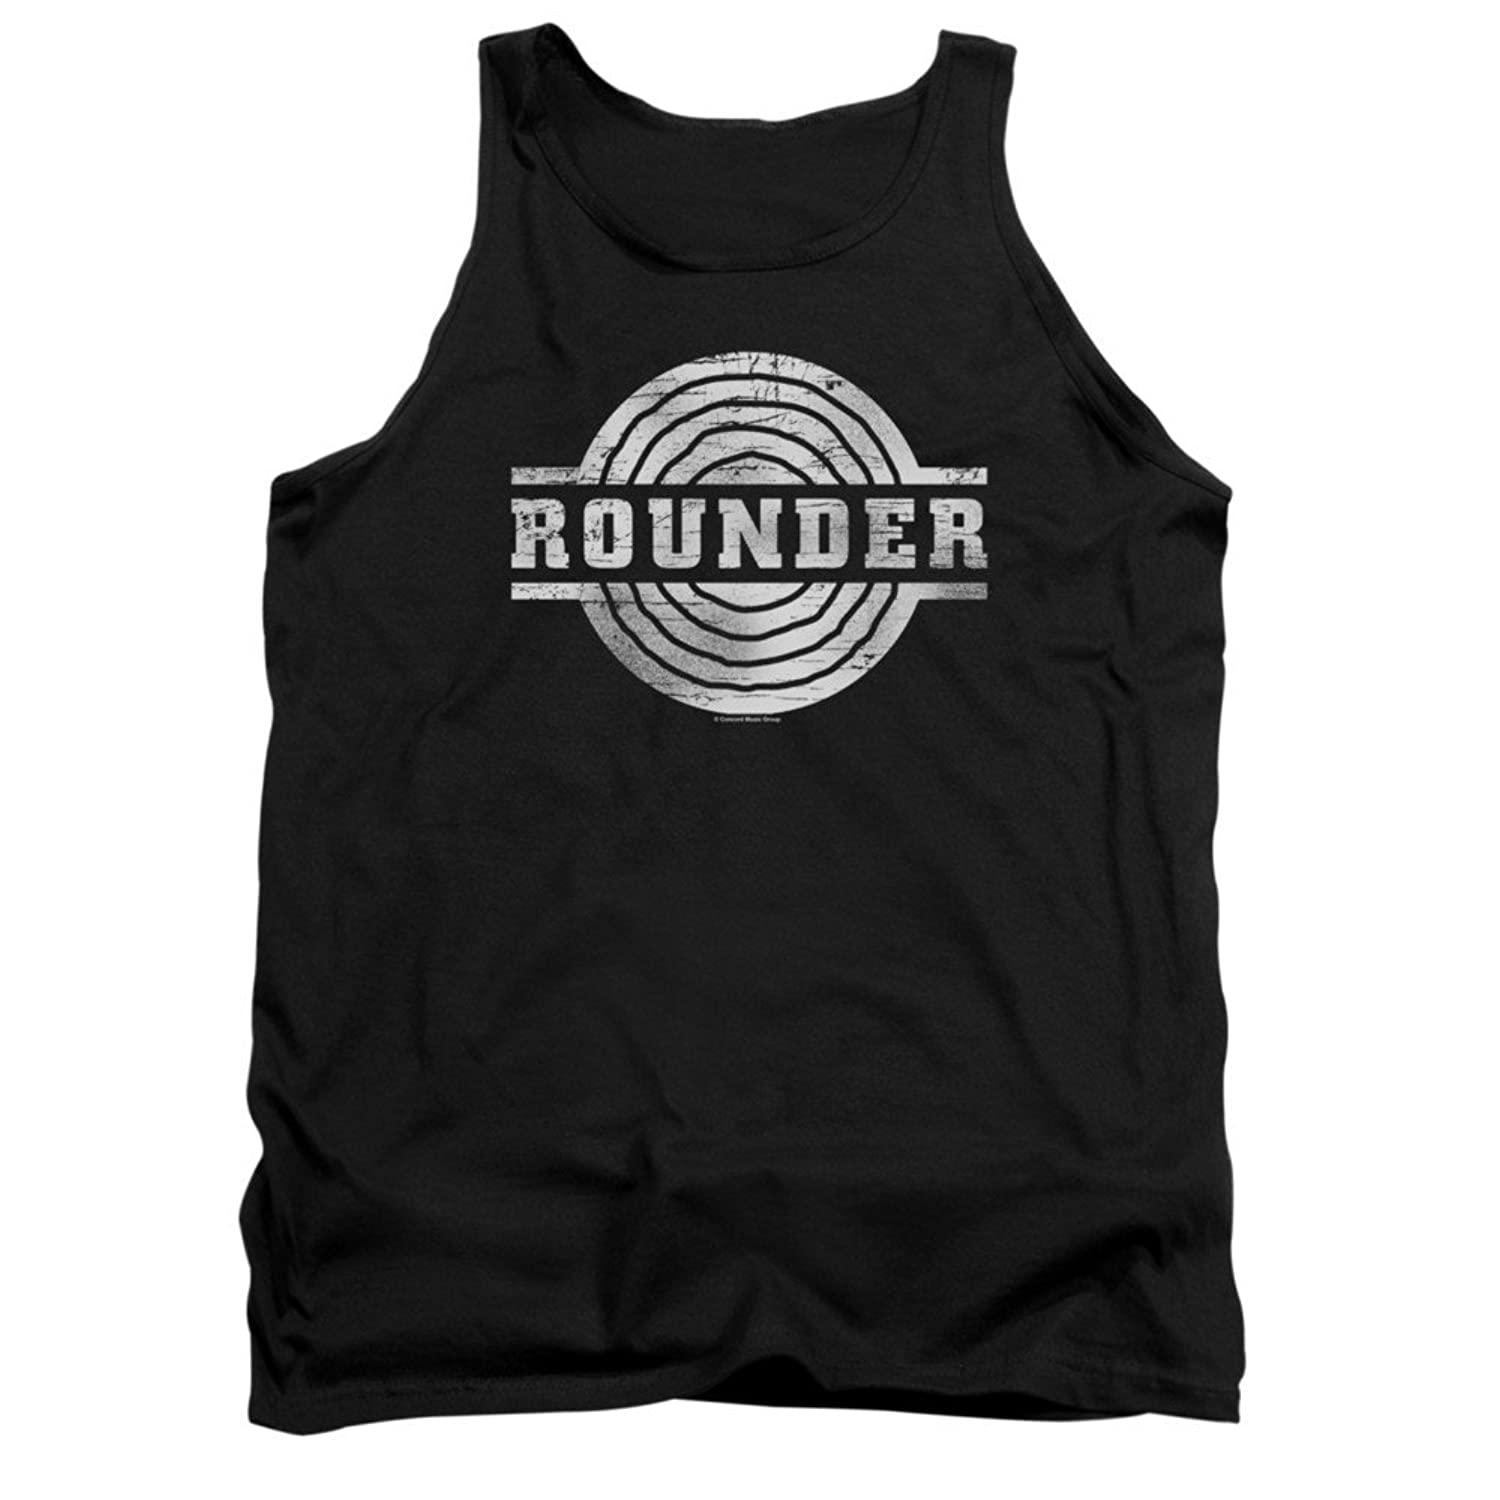 Concord Music Group Rounder Records Retro Logo Black Adult Tank Top Shirt